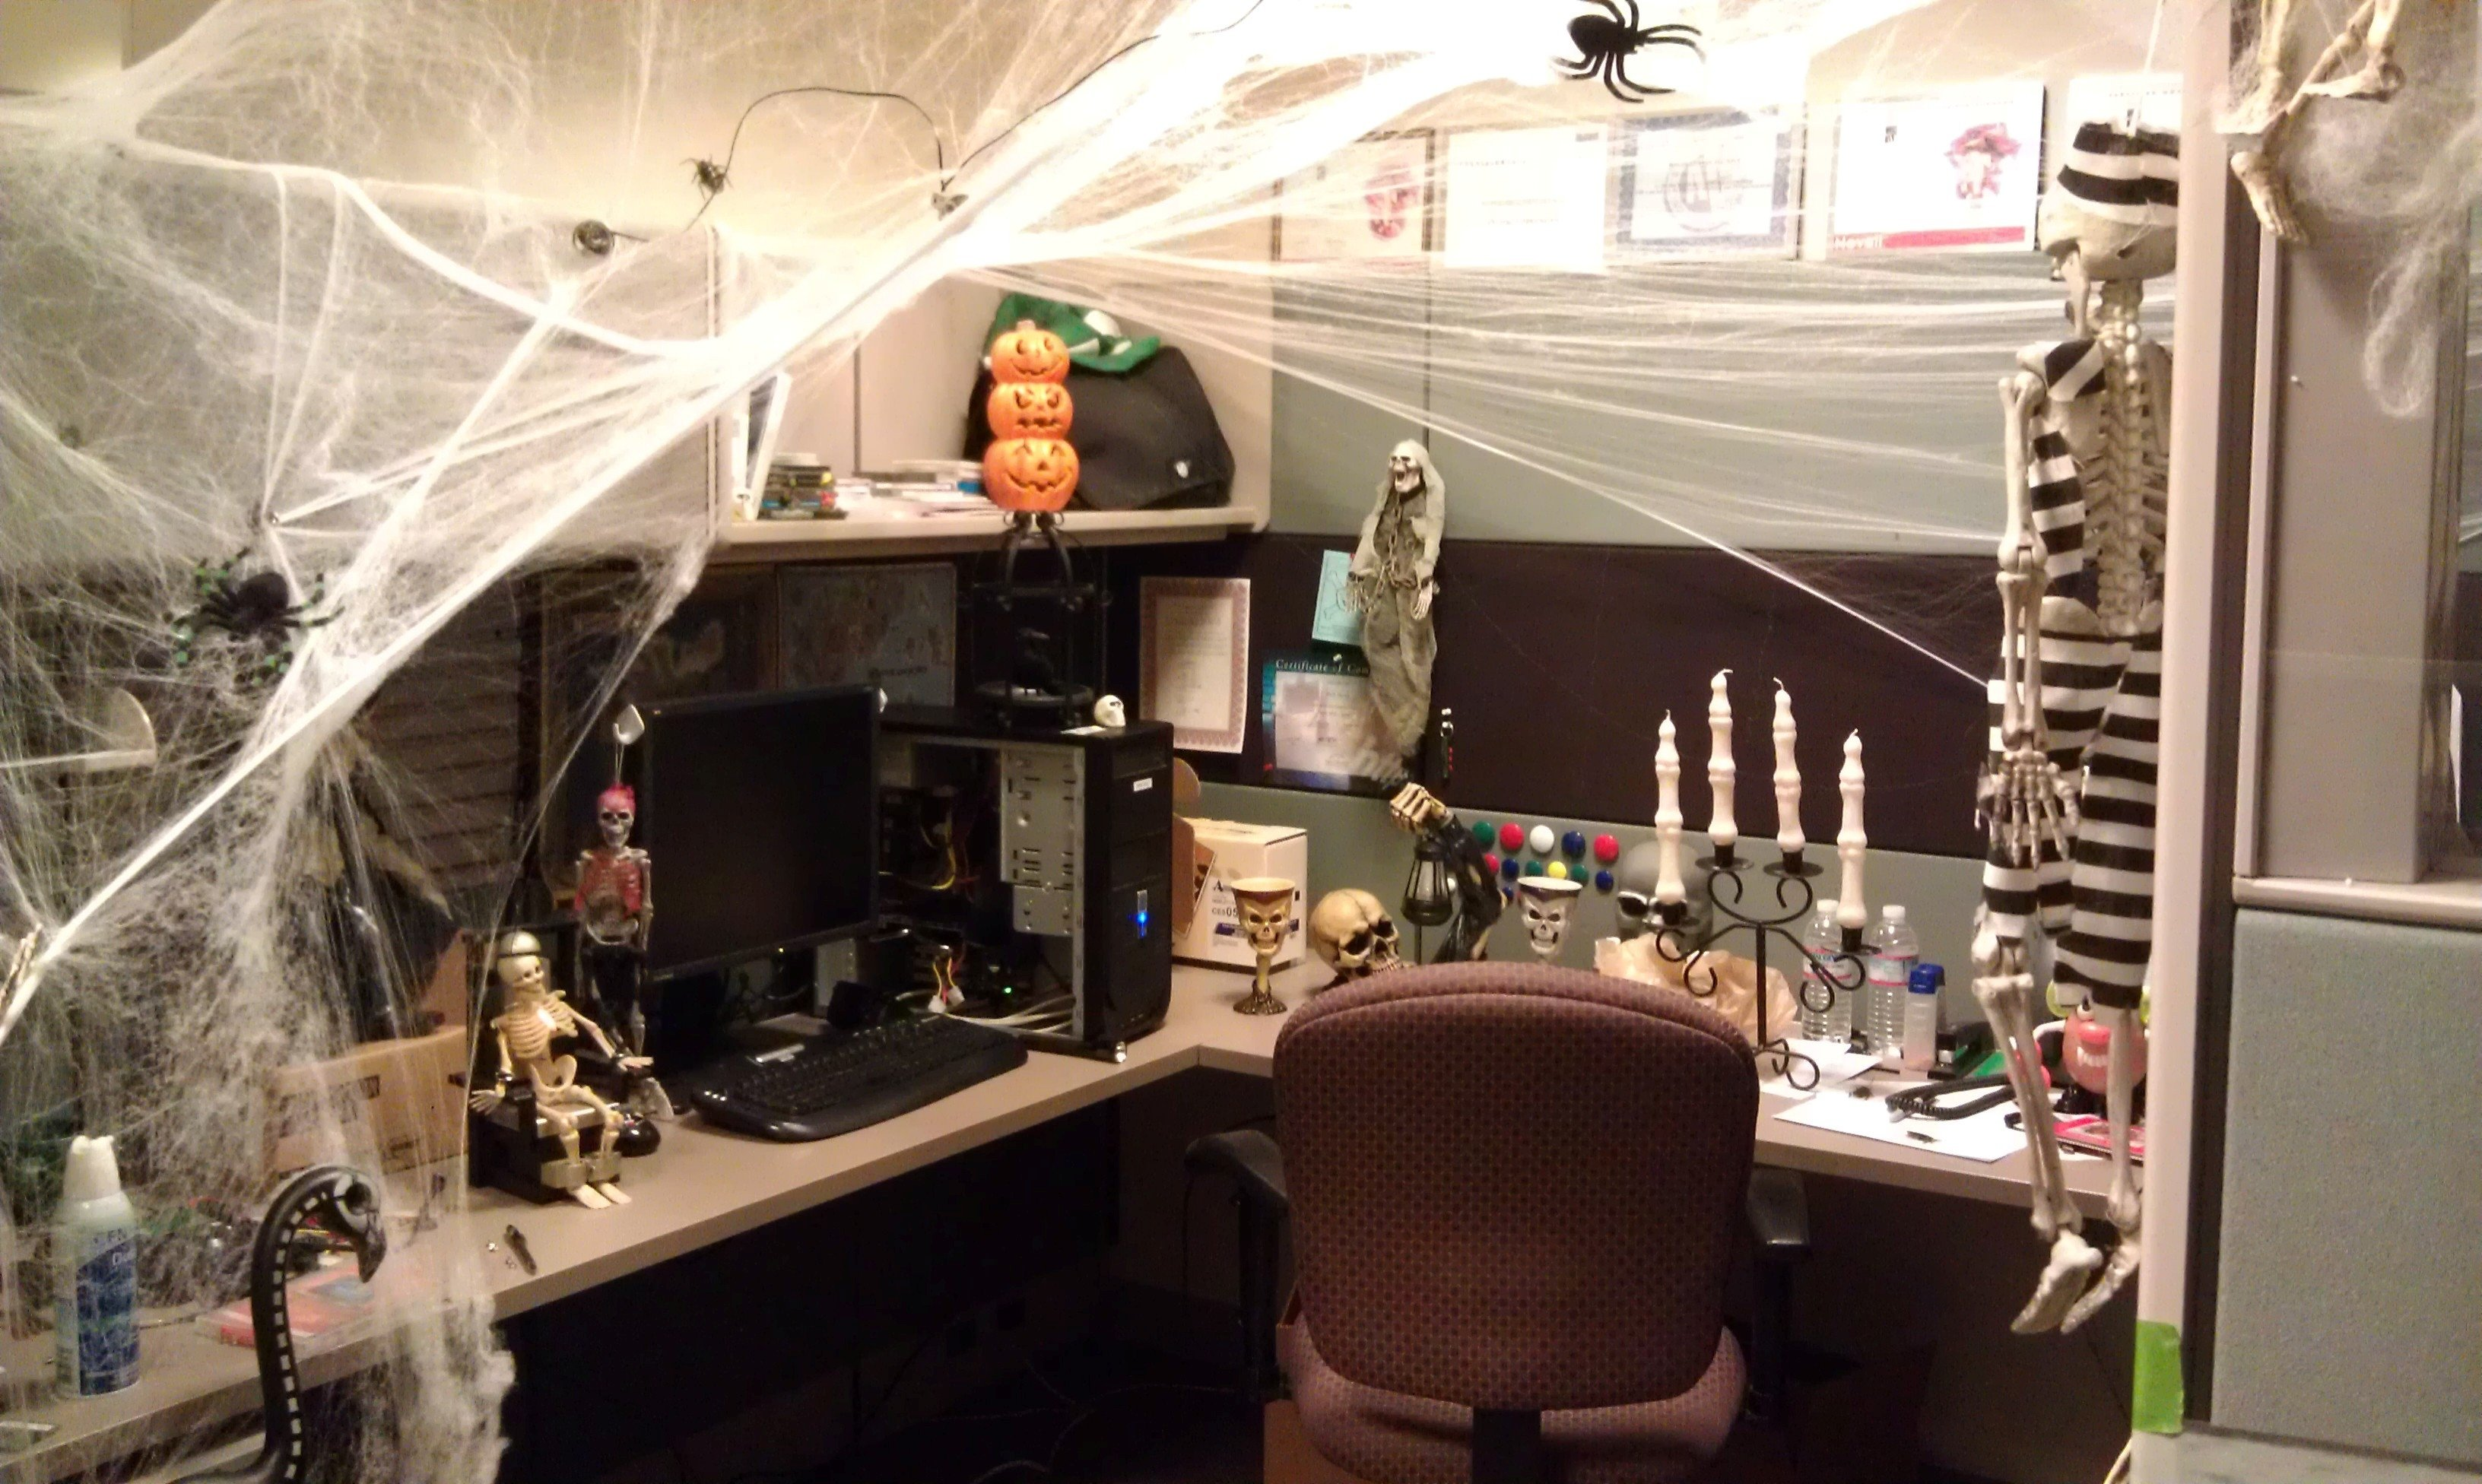 10 Amazing Halloween Decorating Ideas For The Office 2019